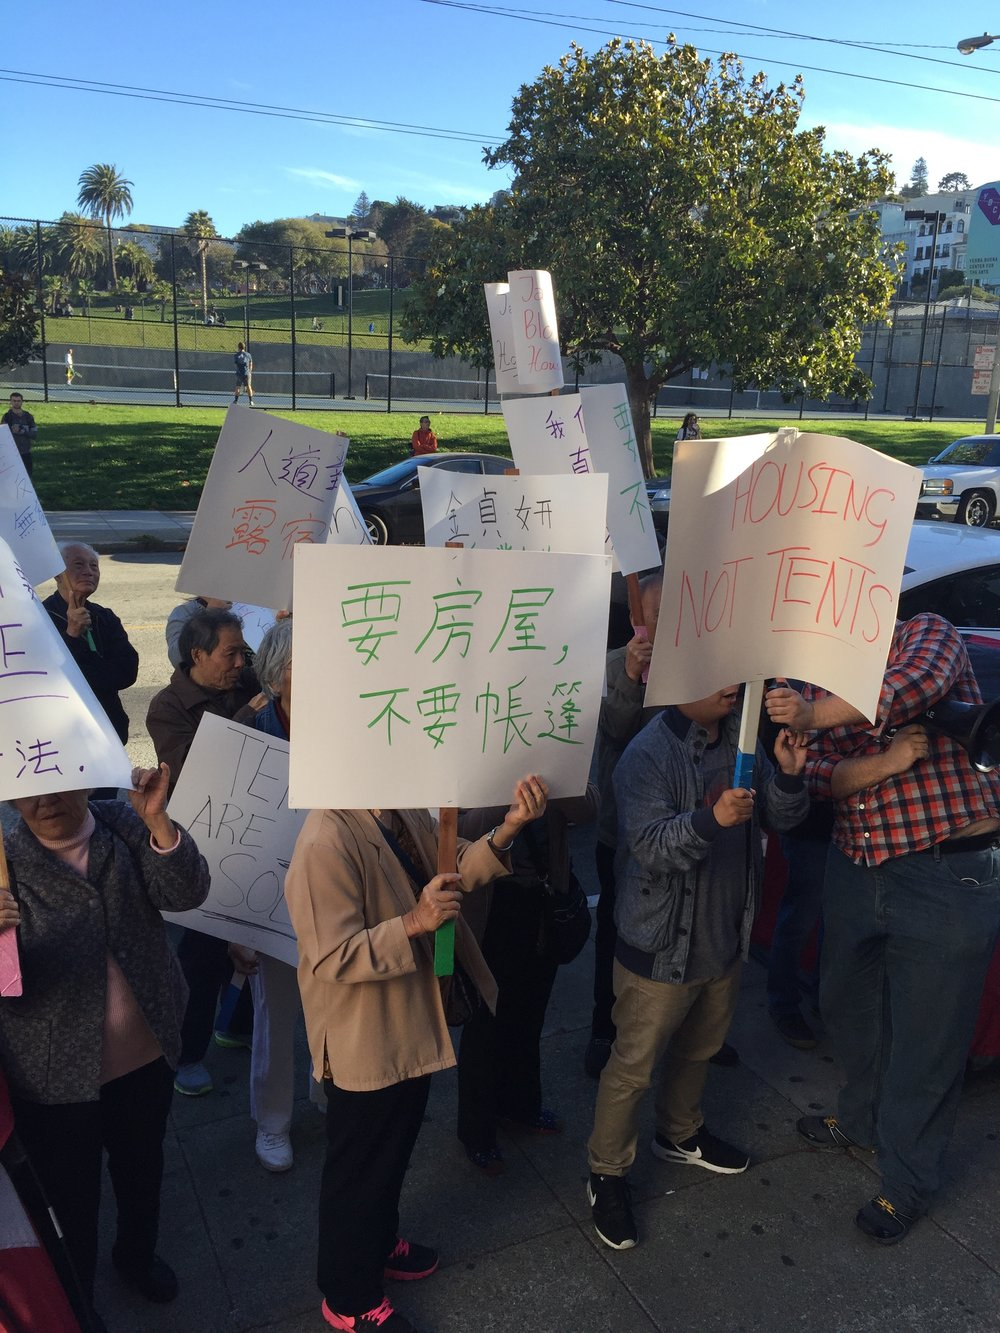 Supporters of Scott Wiener picketing outside Mission High School